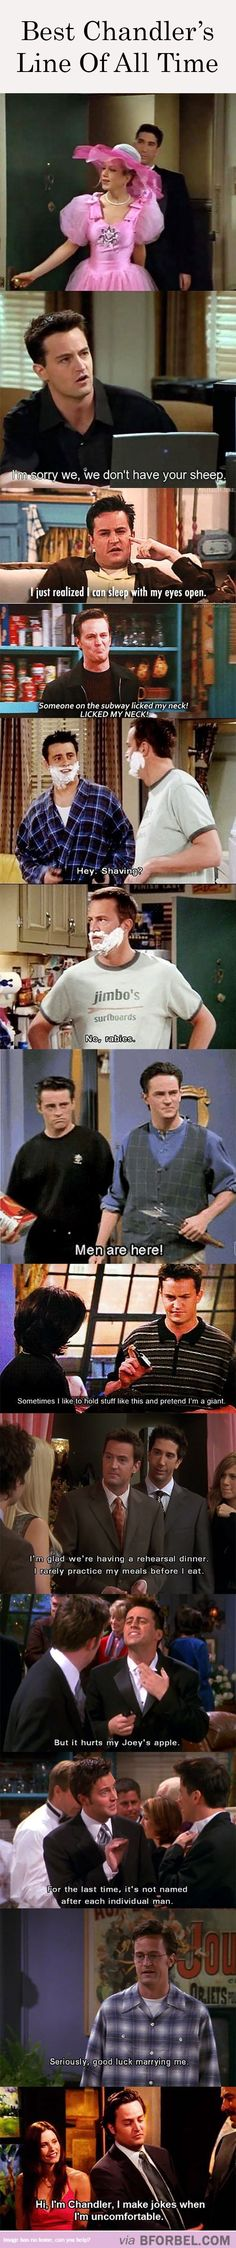 Everything Chandler says is hilarious. But these are some good ones.